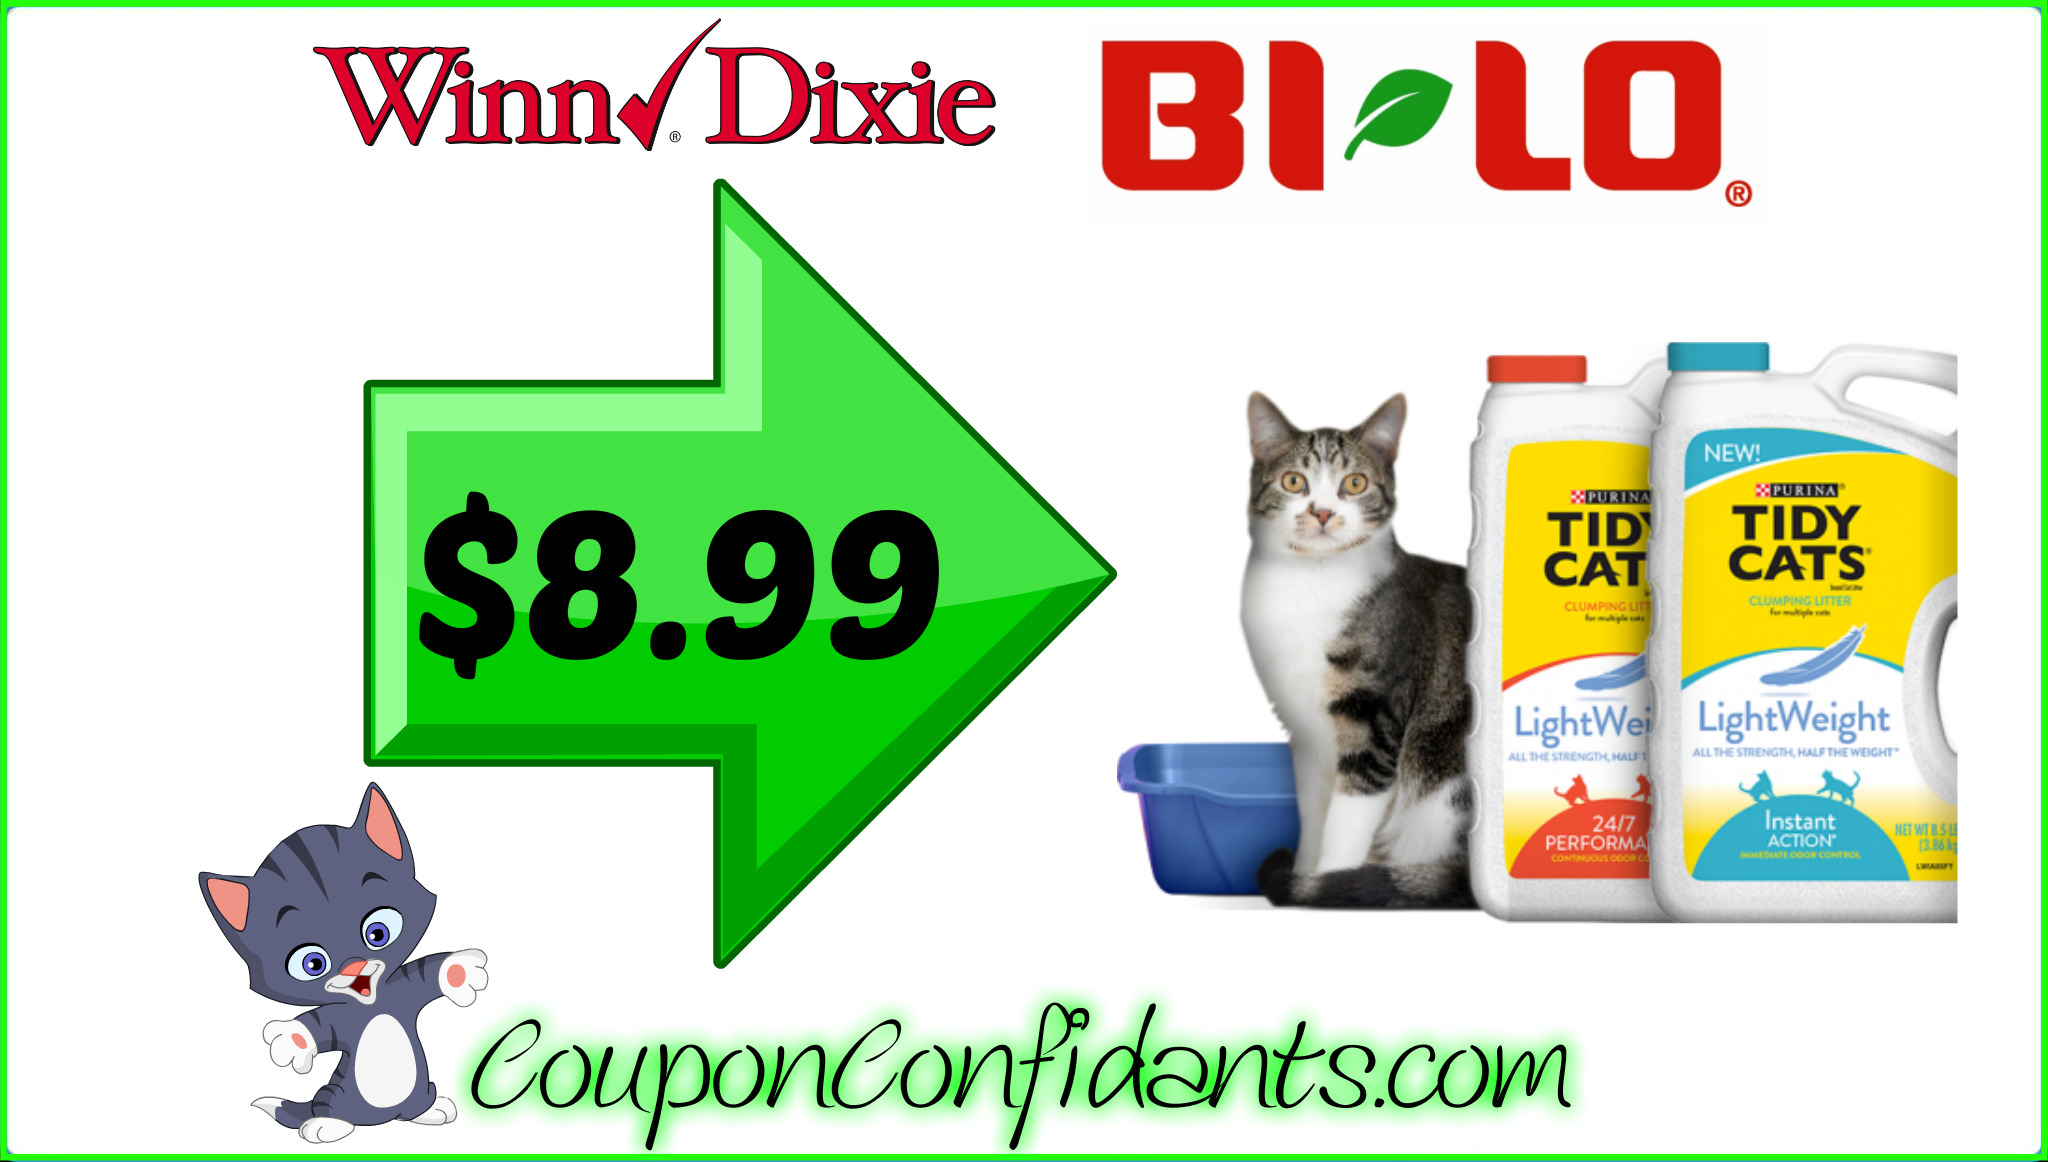 photo regarding Tidy Cat Printable 3.00 Coupon known as Tidy Cats bundle at Winn Dixie and Bi-lo! ⋆ Coupon Confidants